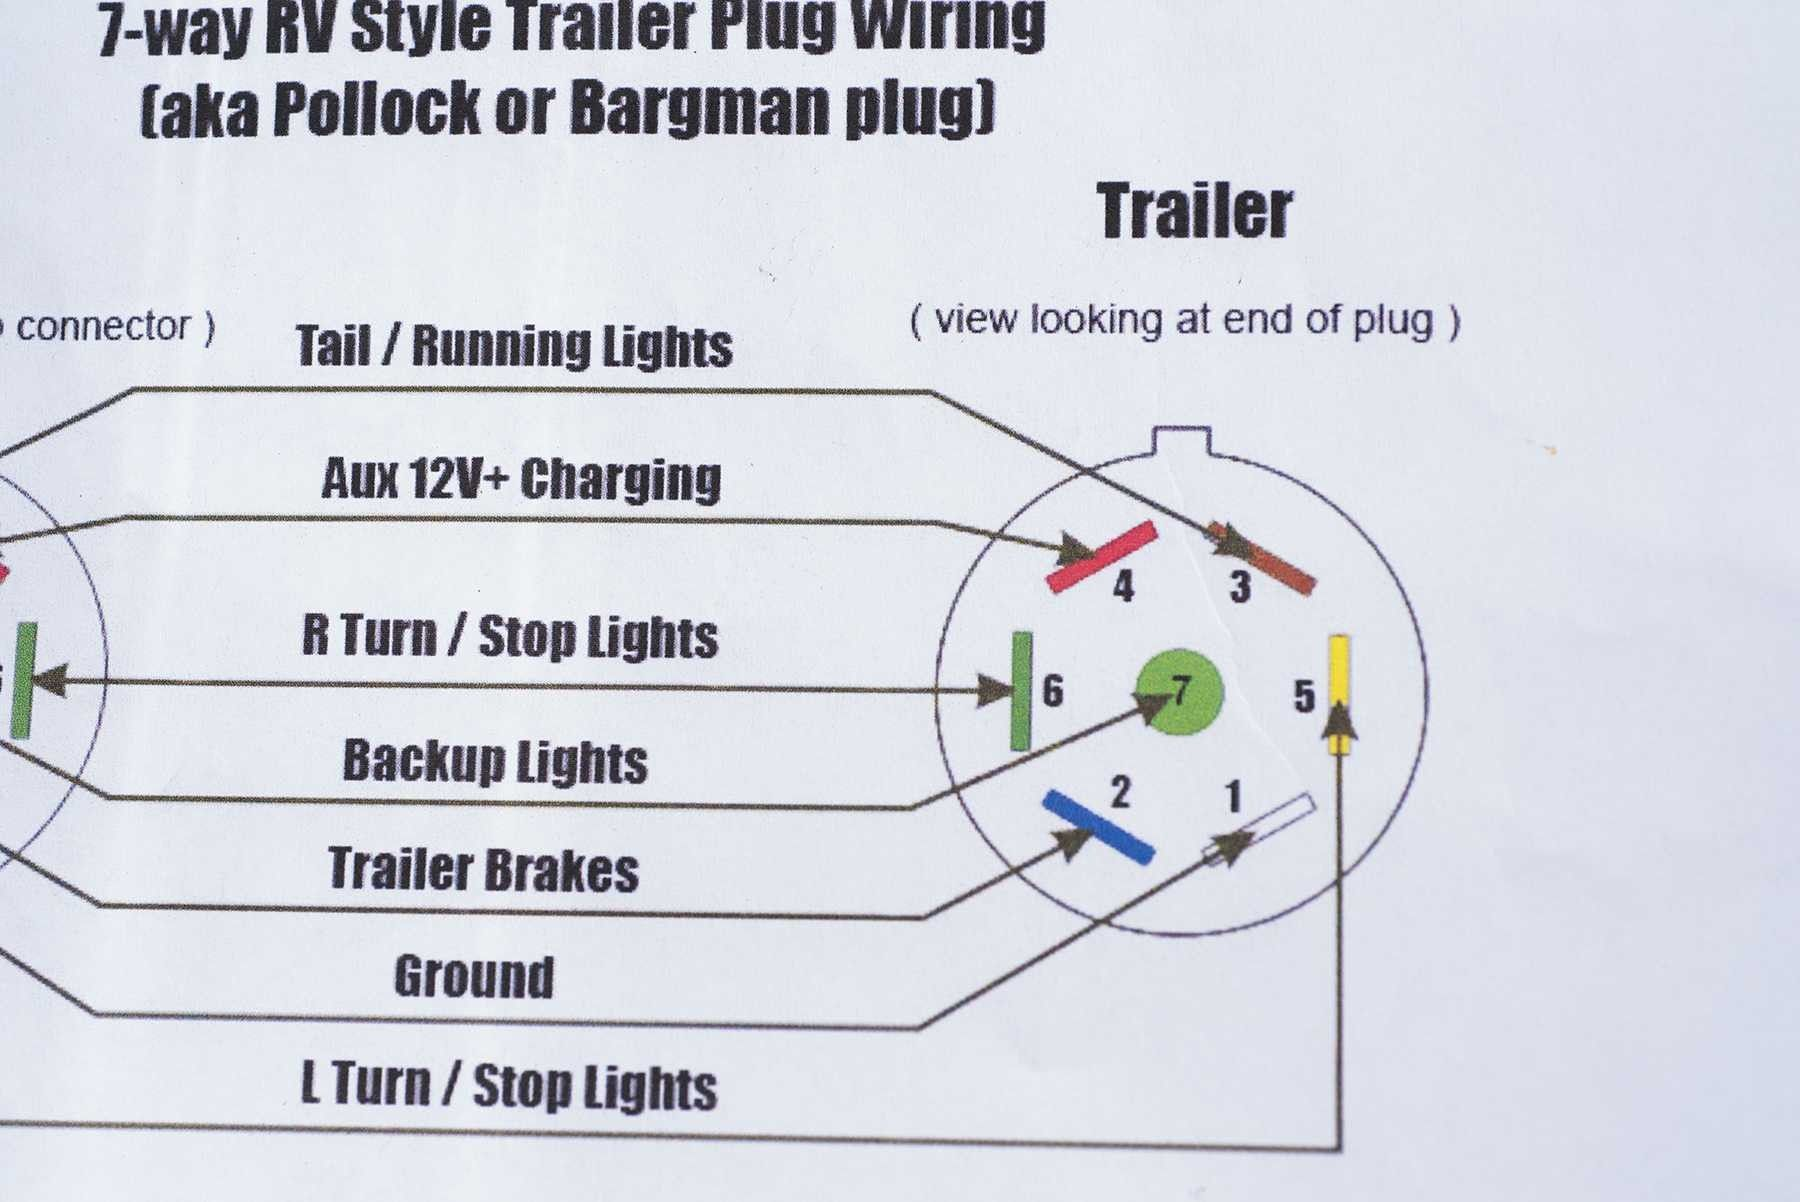 Best Of Wiring Diagram For 7 Pin Trailer Plug Uk Diagrams Digramssample Diagramimages Wirin Trailer Wiring Diagram Trailer Light Wiring Boat Trailer Lights